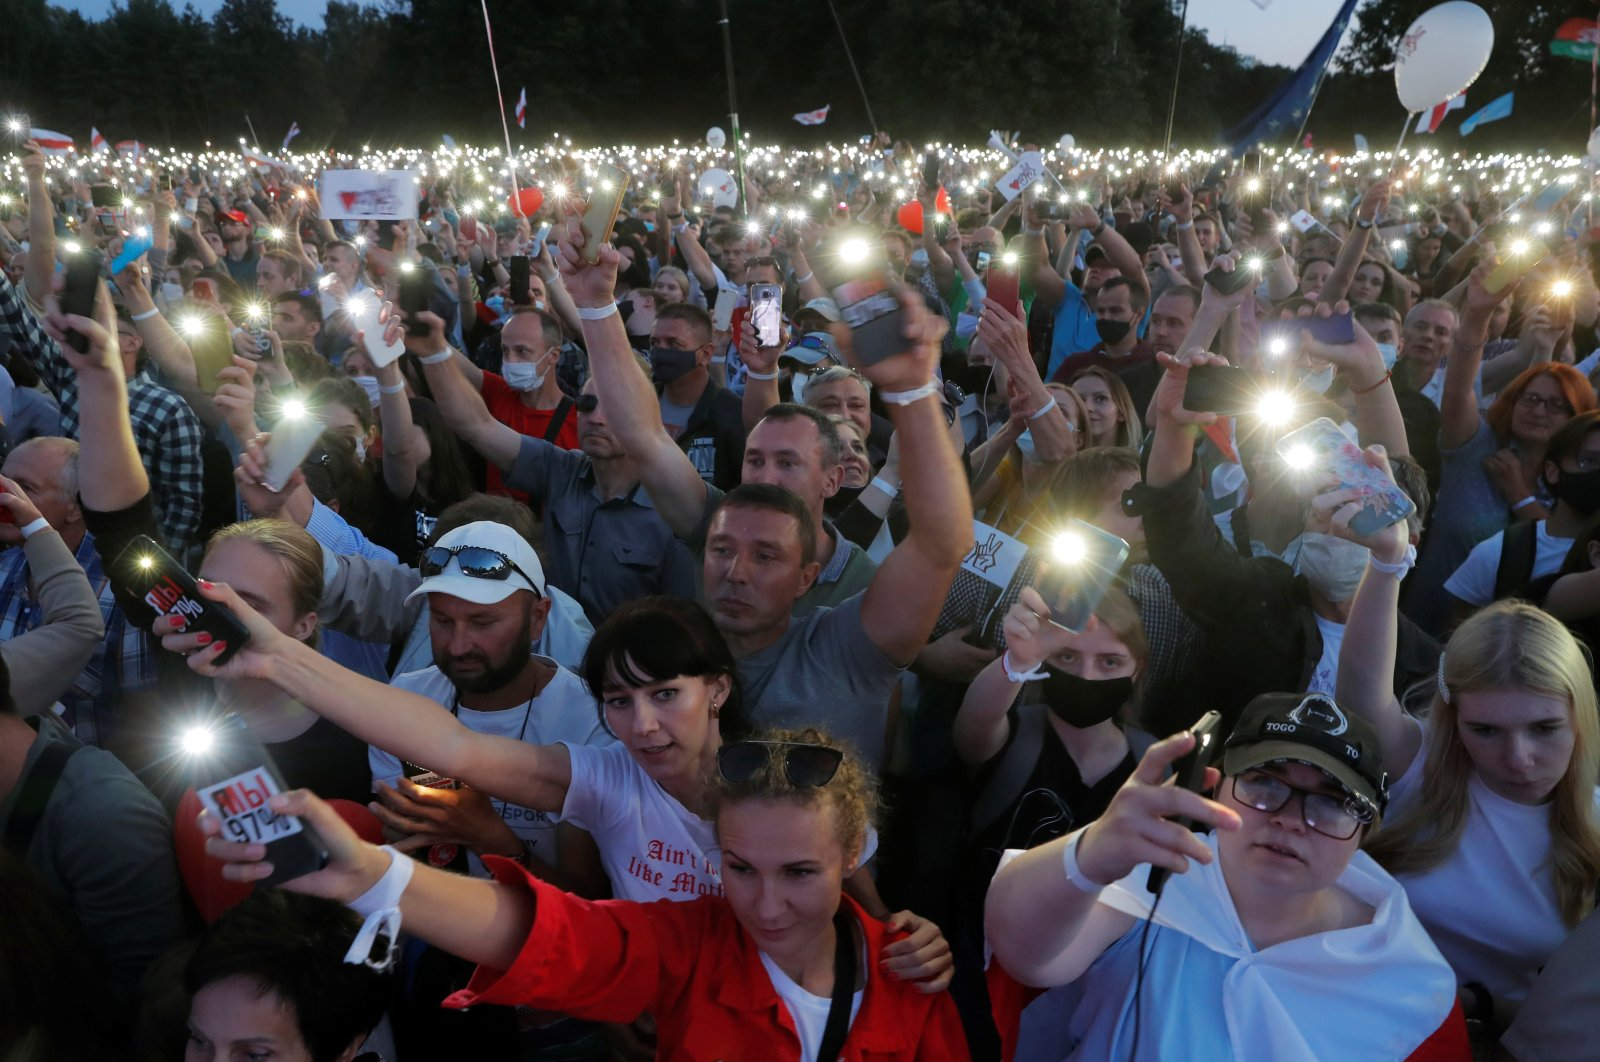 Supporters of Belarusian presidential candidate Svetlana Tikhanovskaya use the flashlights on their phones to express support during an election campaign rally in Minsk, Belarus, July 30, 2020. (Reuters Photo)